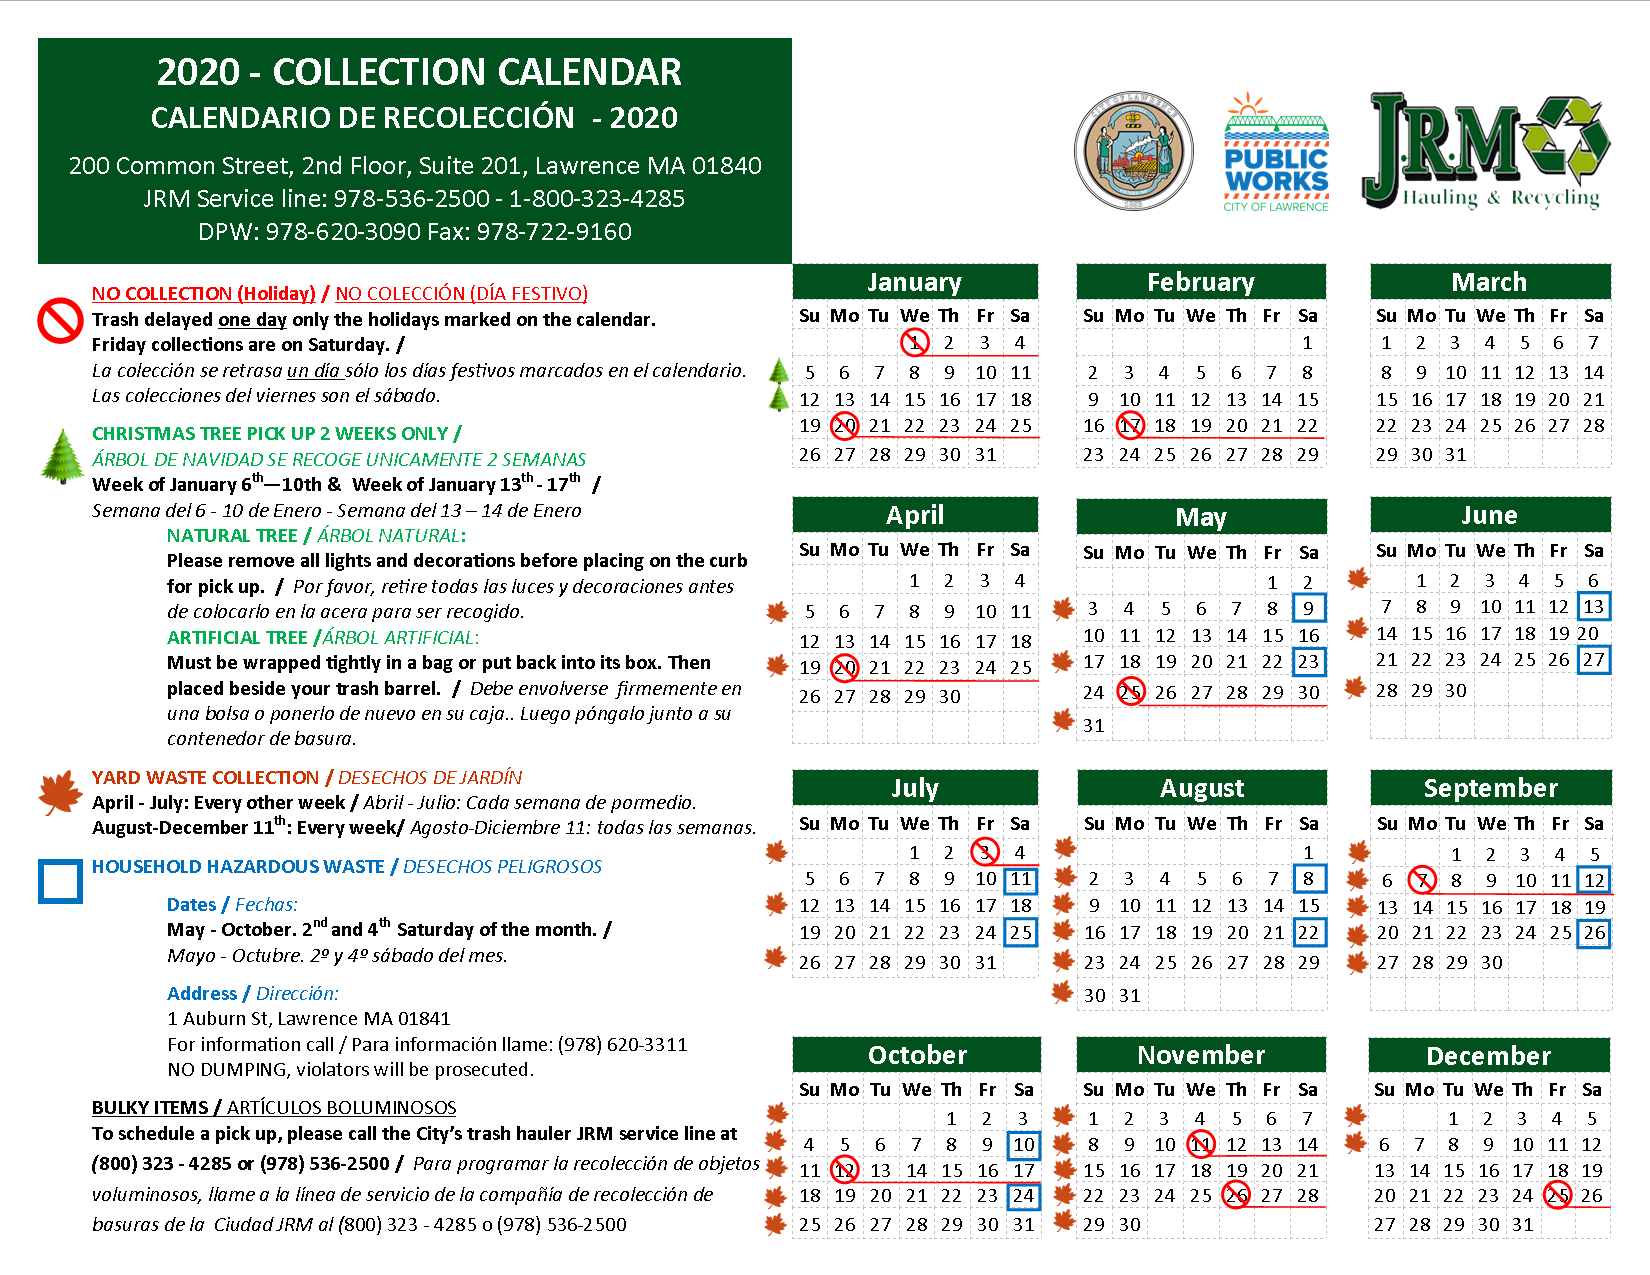 Jackson Township Ohio Christmas Tree Disposal 2020 Solid Waste Collection Schedule | Lawrence, MA